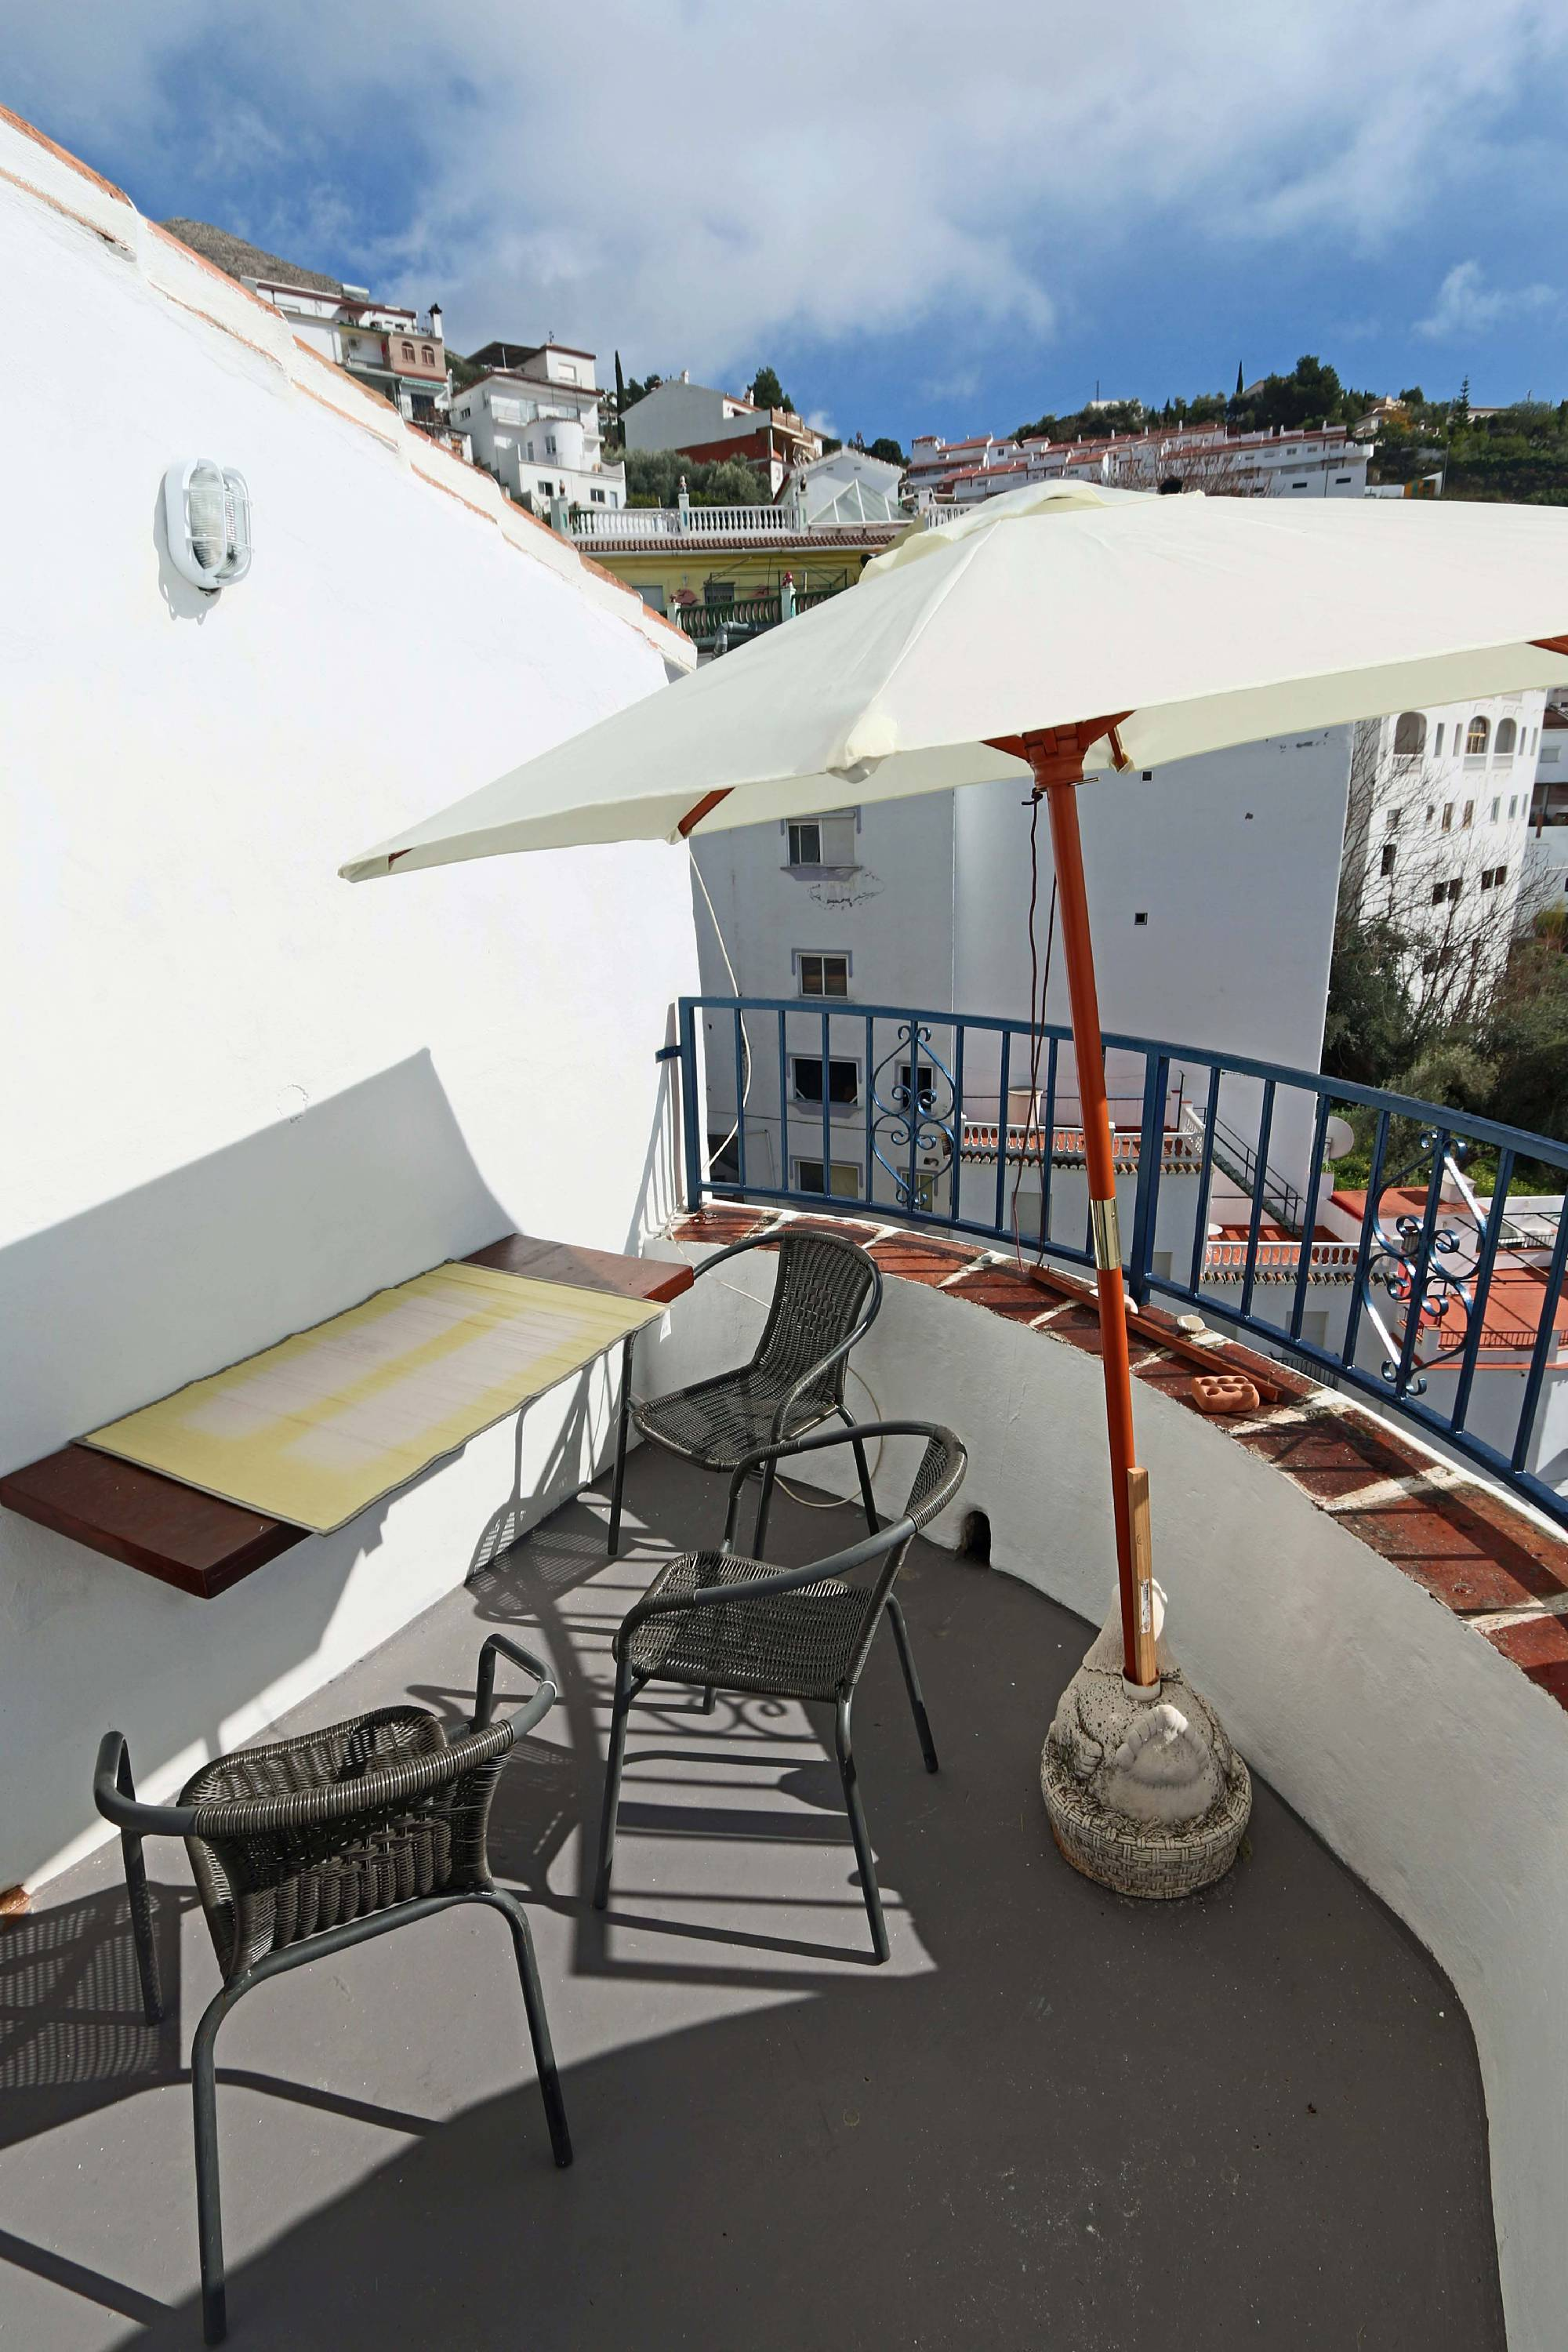 Holiday in Spain Costa del Sol village town for holiday rental